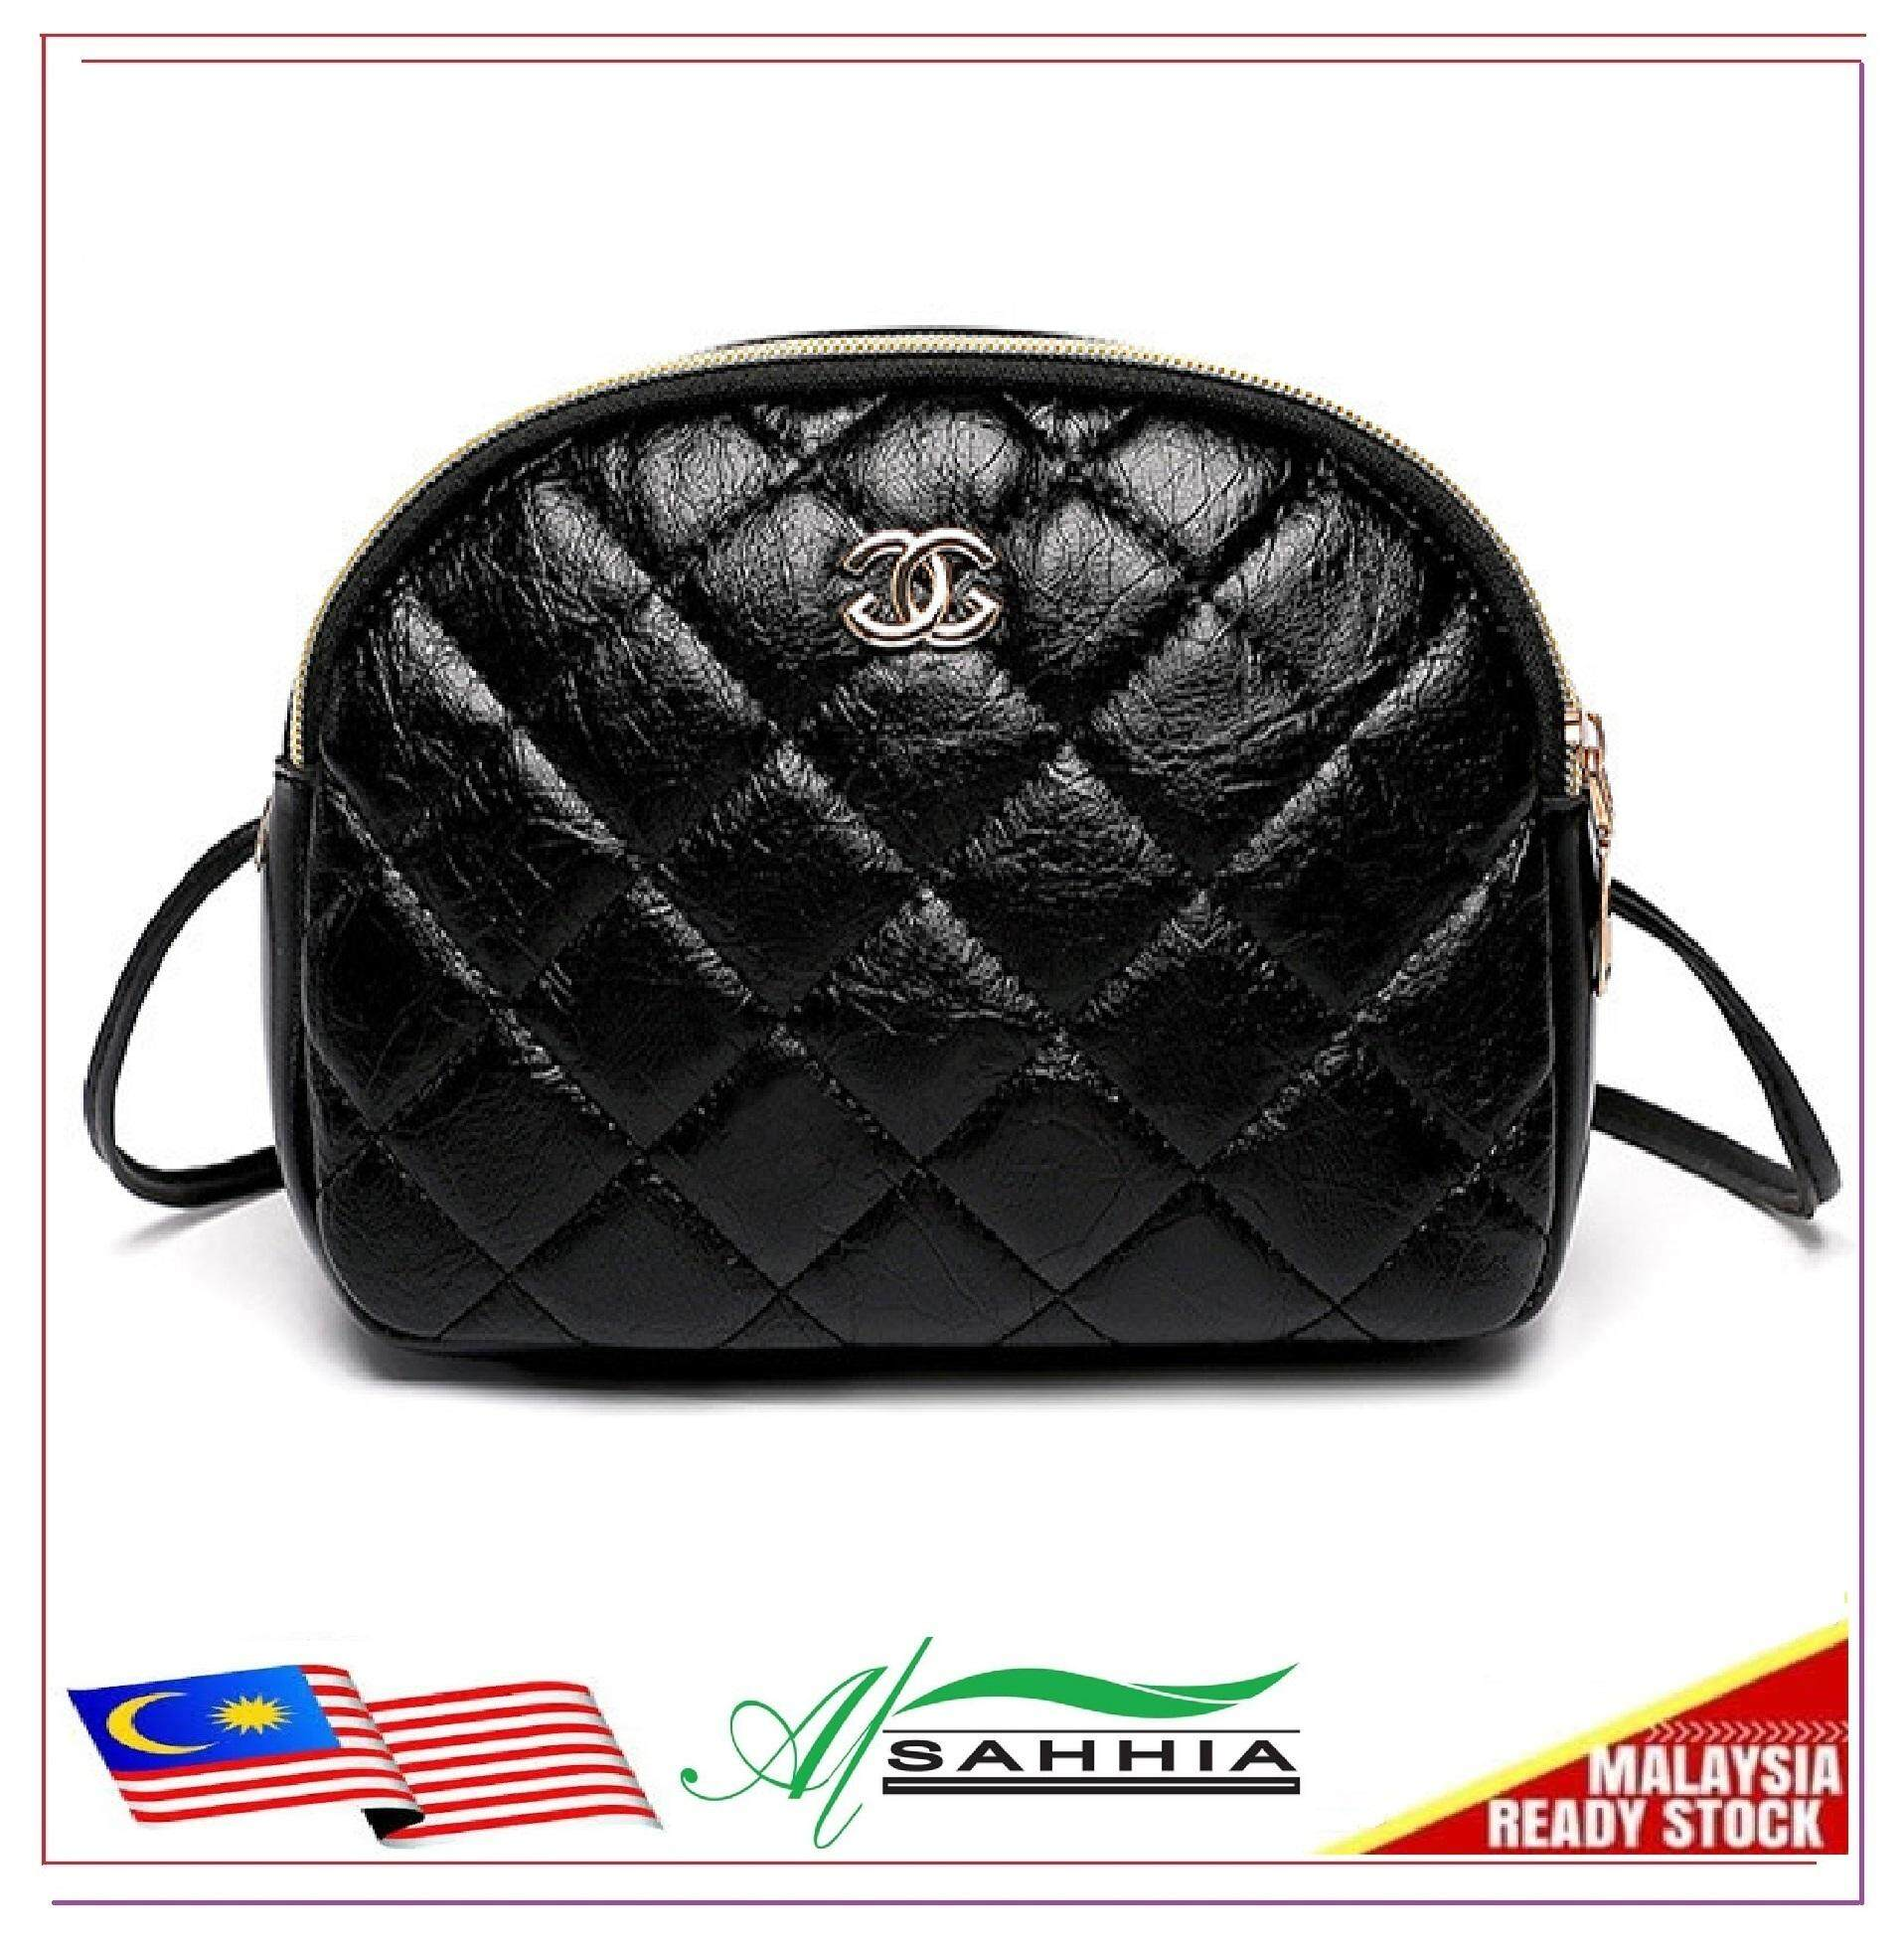 Al Sahhia Ready Stock GG Sling Shoulder Women Bags